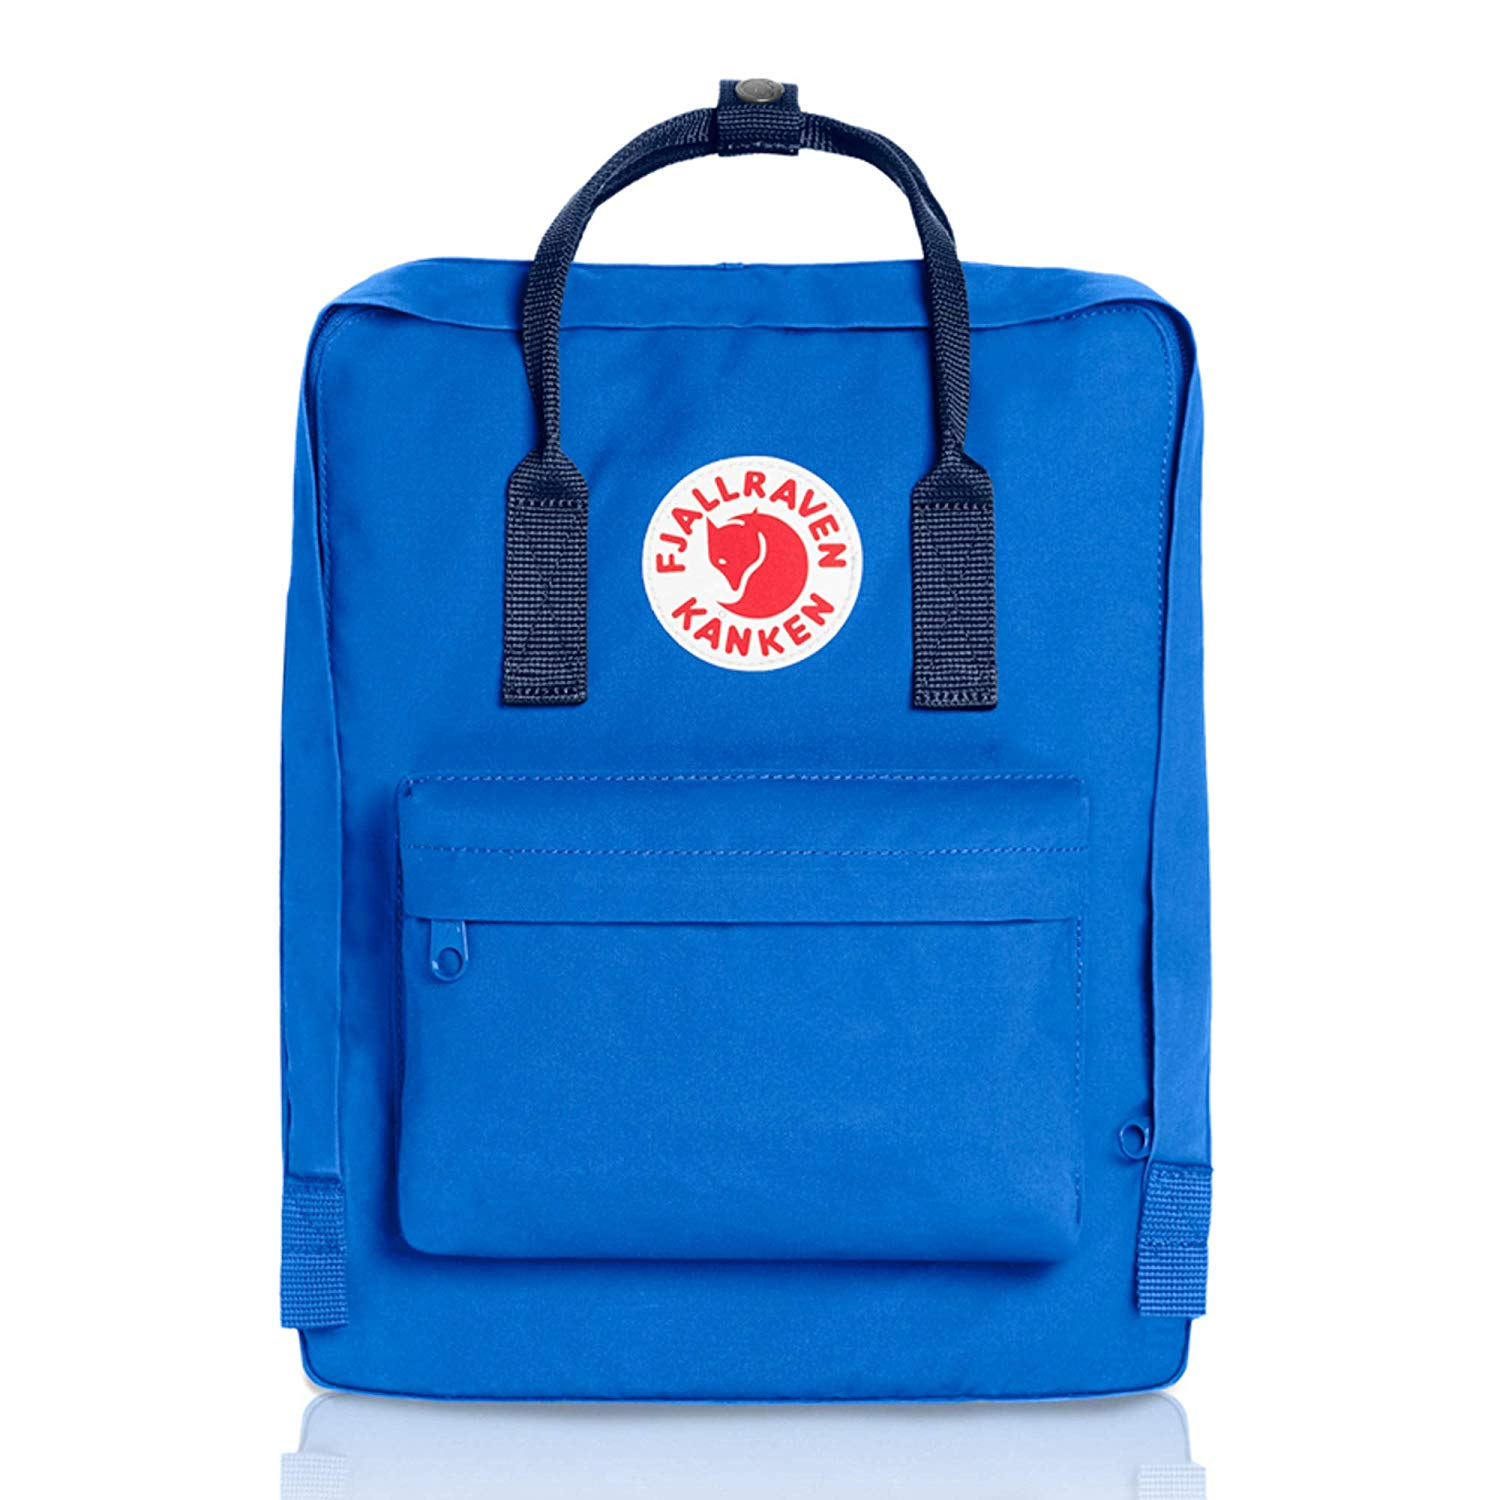 Fjallraven - Kanken Classic Backpack for Everyday - UN Blue/Navy